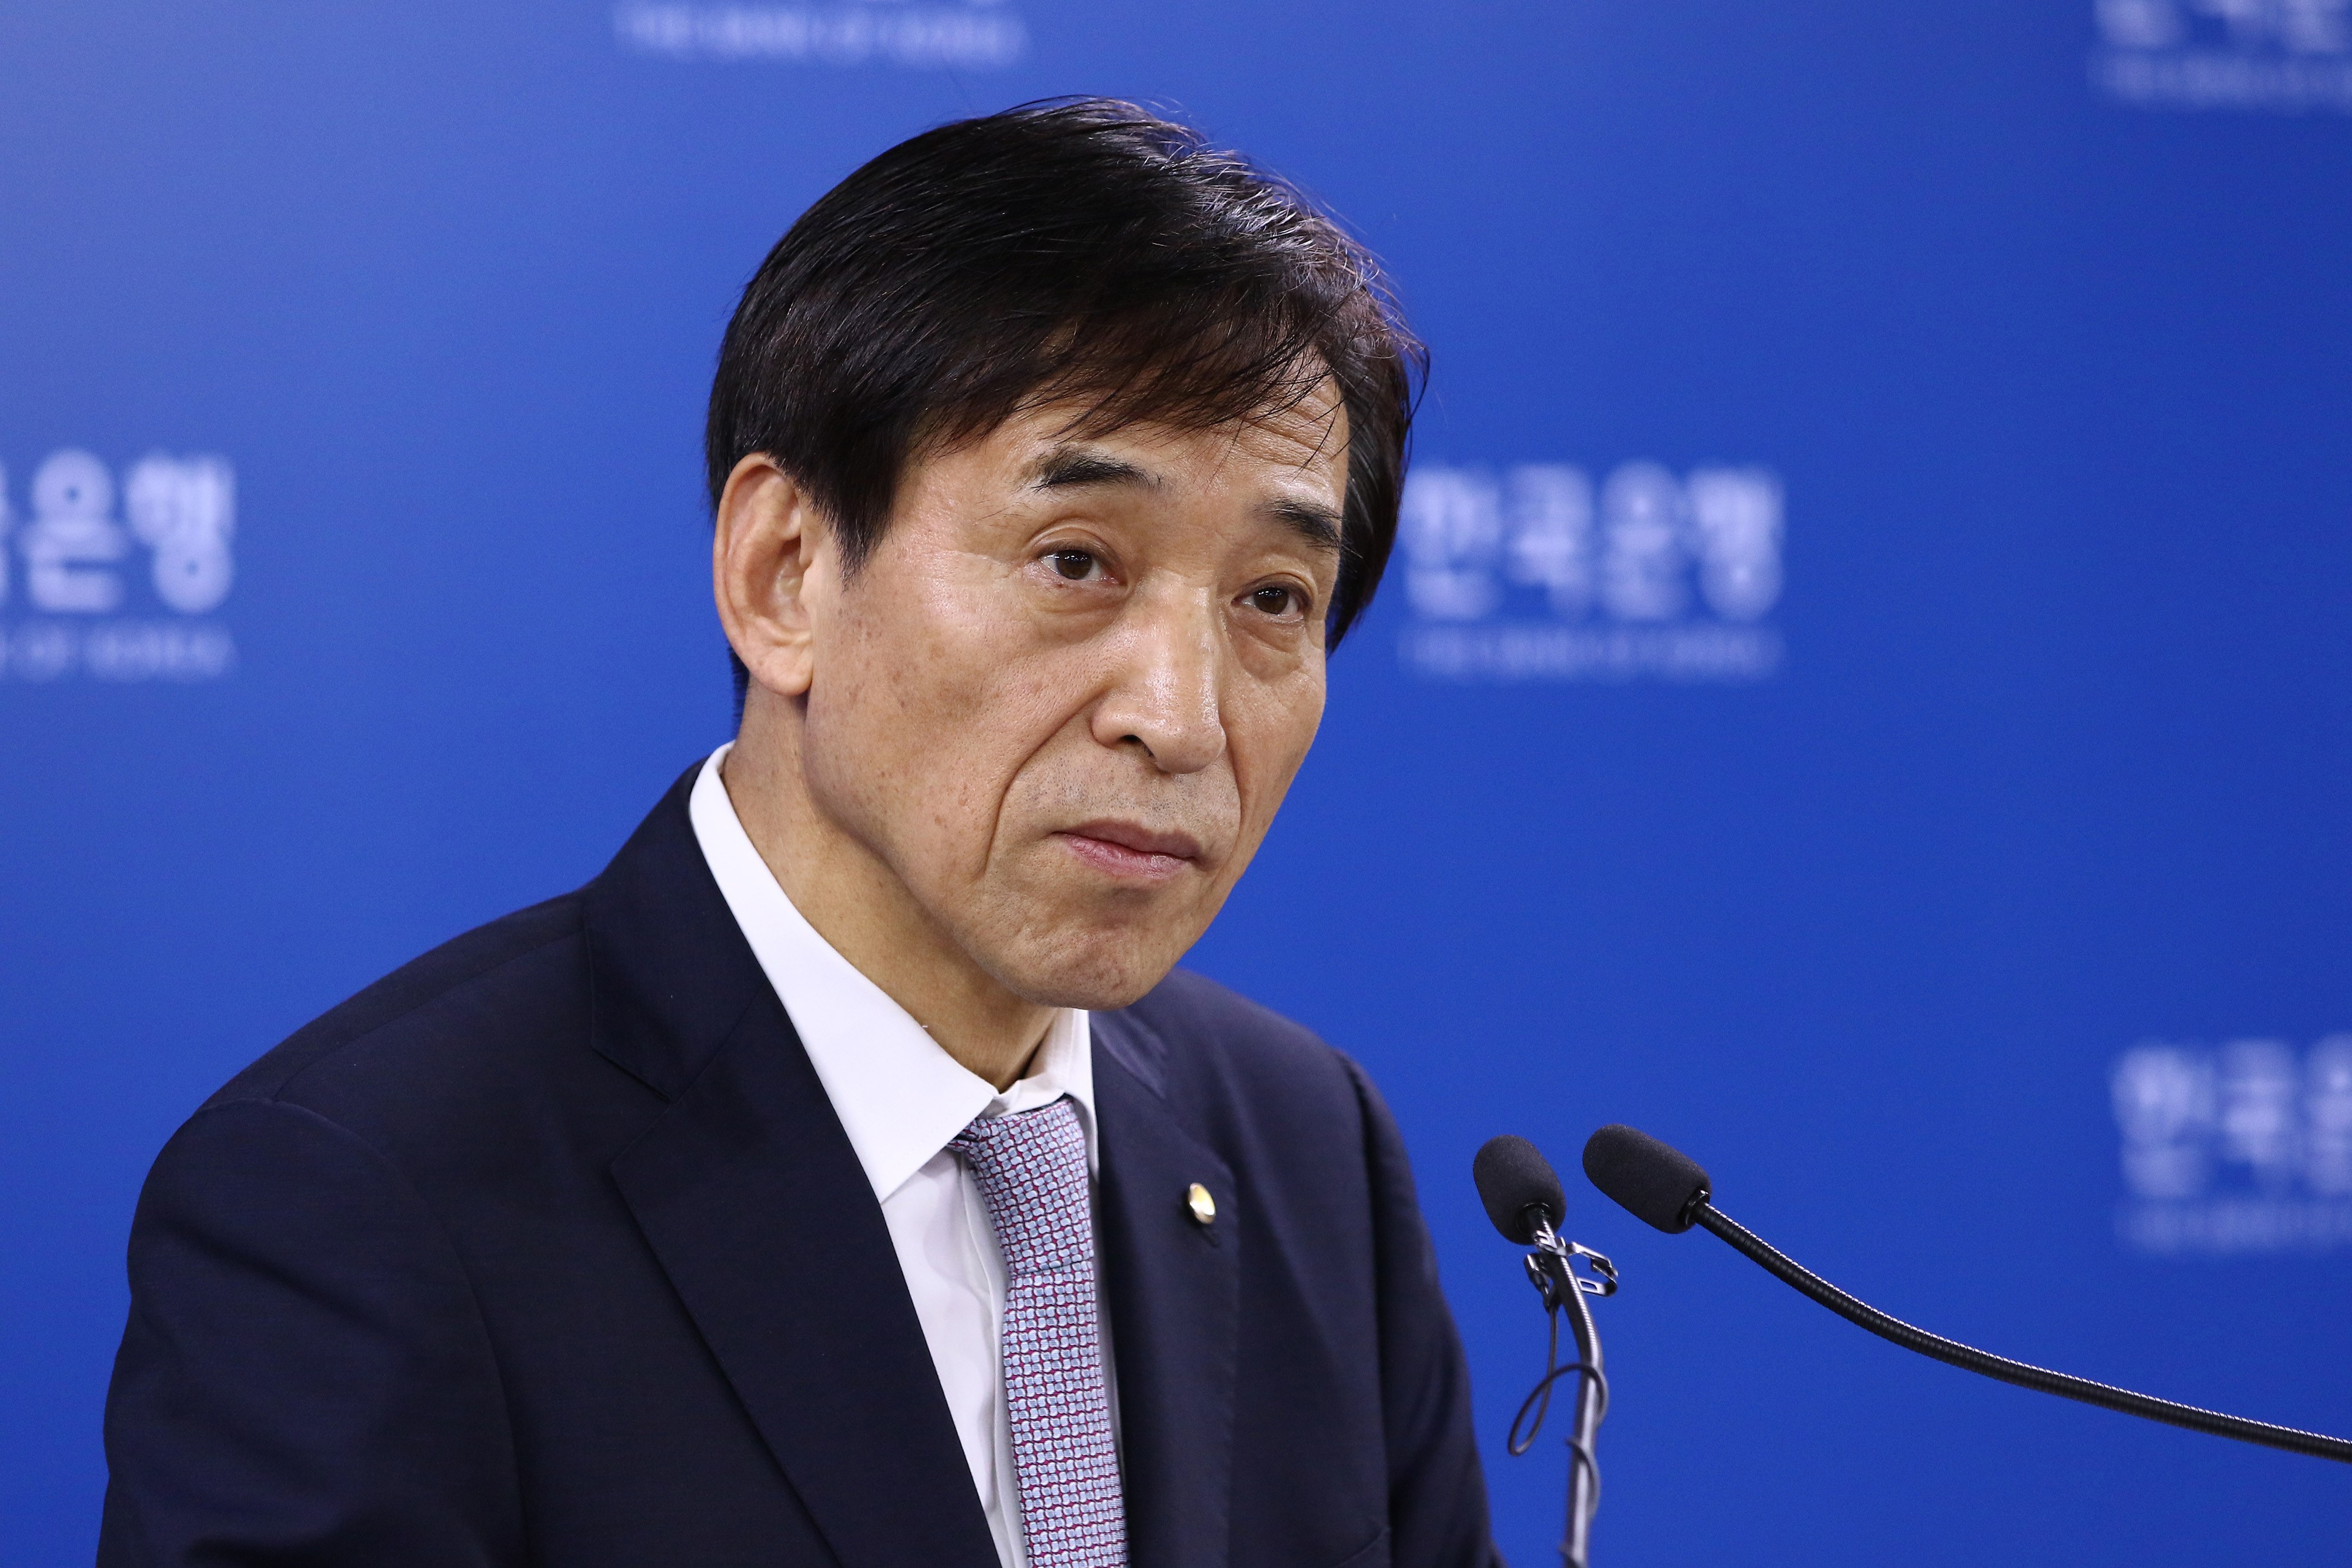 Bank Of Korea Governor Lee Ju Yeol At Rate Decision Meeting As Key Rate Held Steady To Gauge Budget Impact